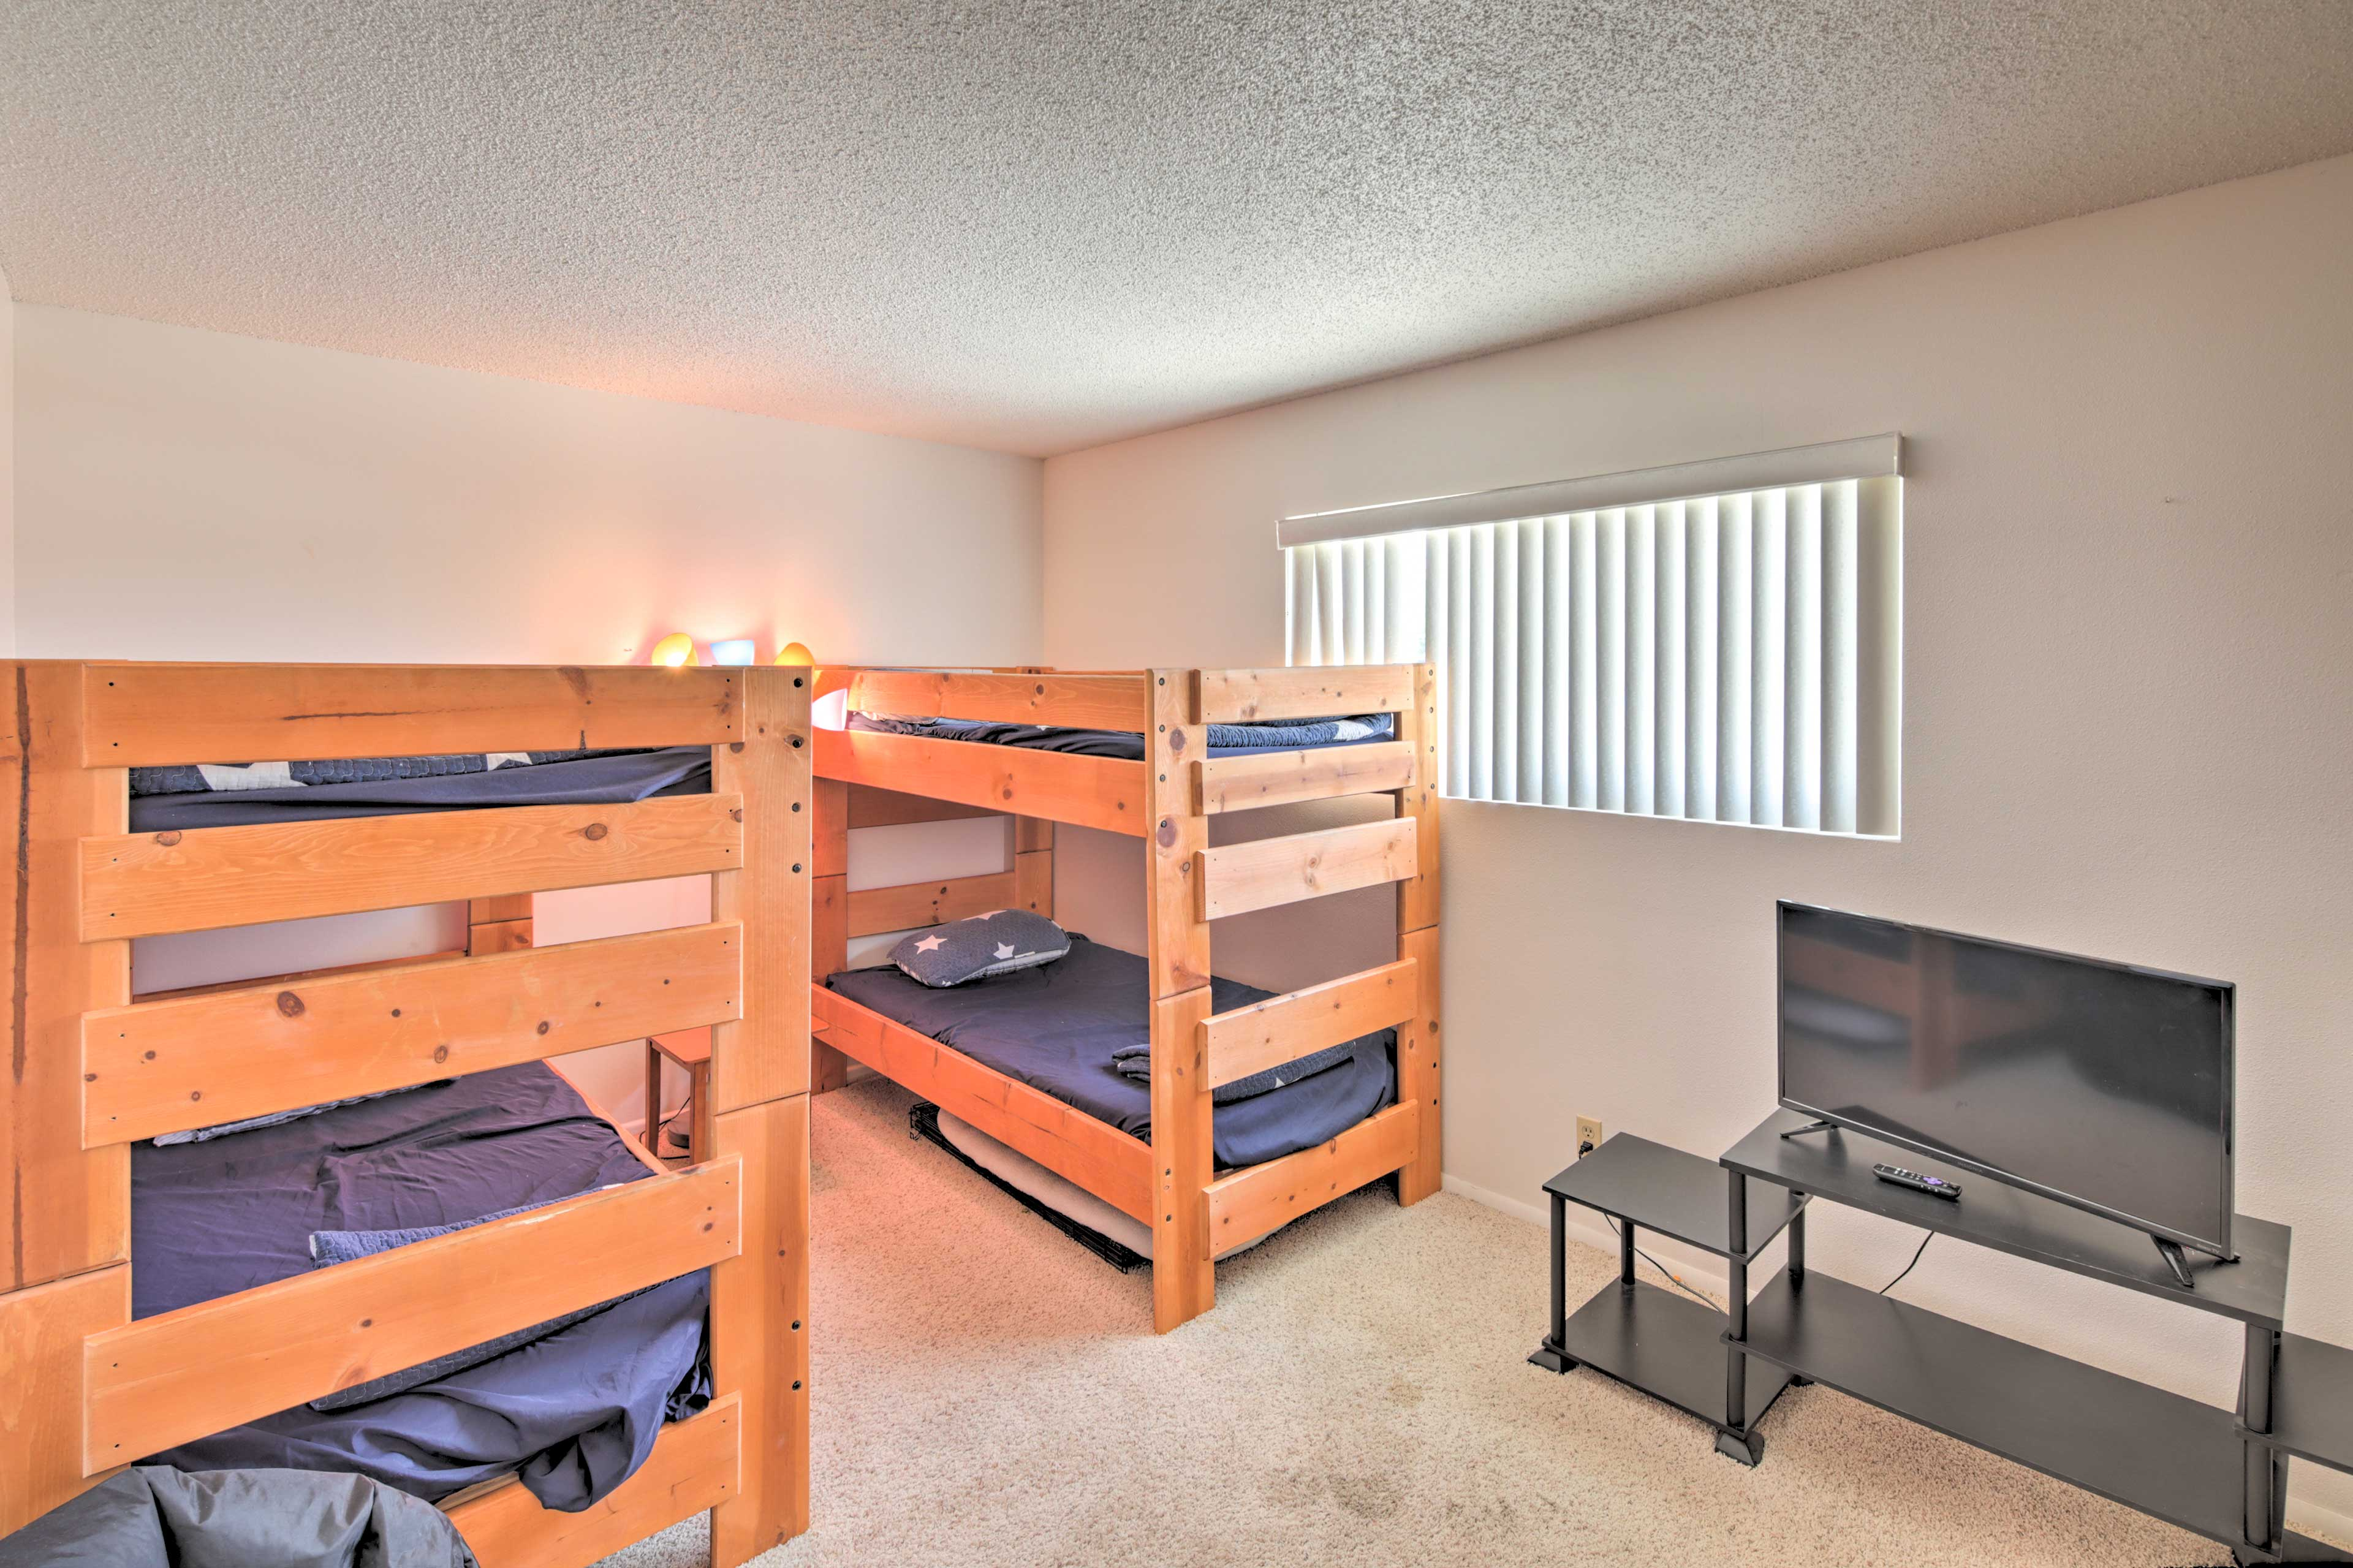 Four will sleep soundly in the twin-over-twin bunk beds.